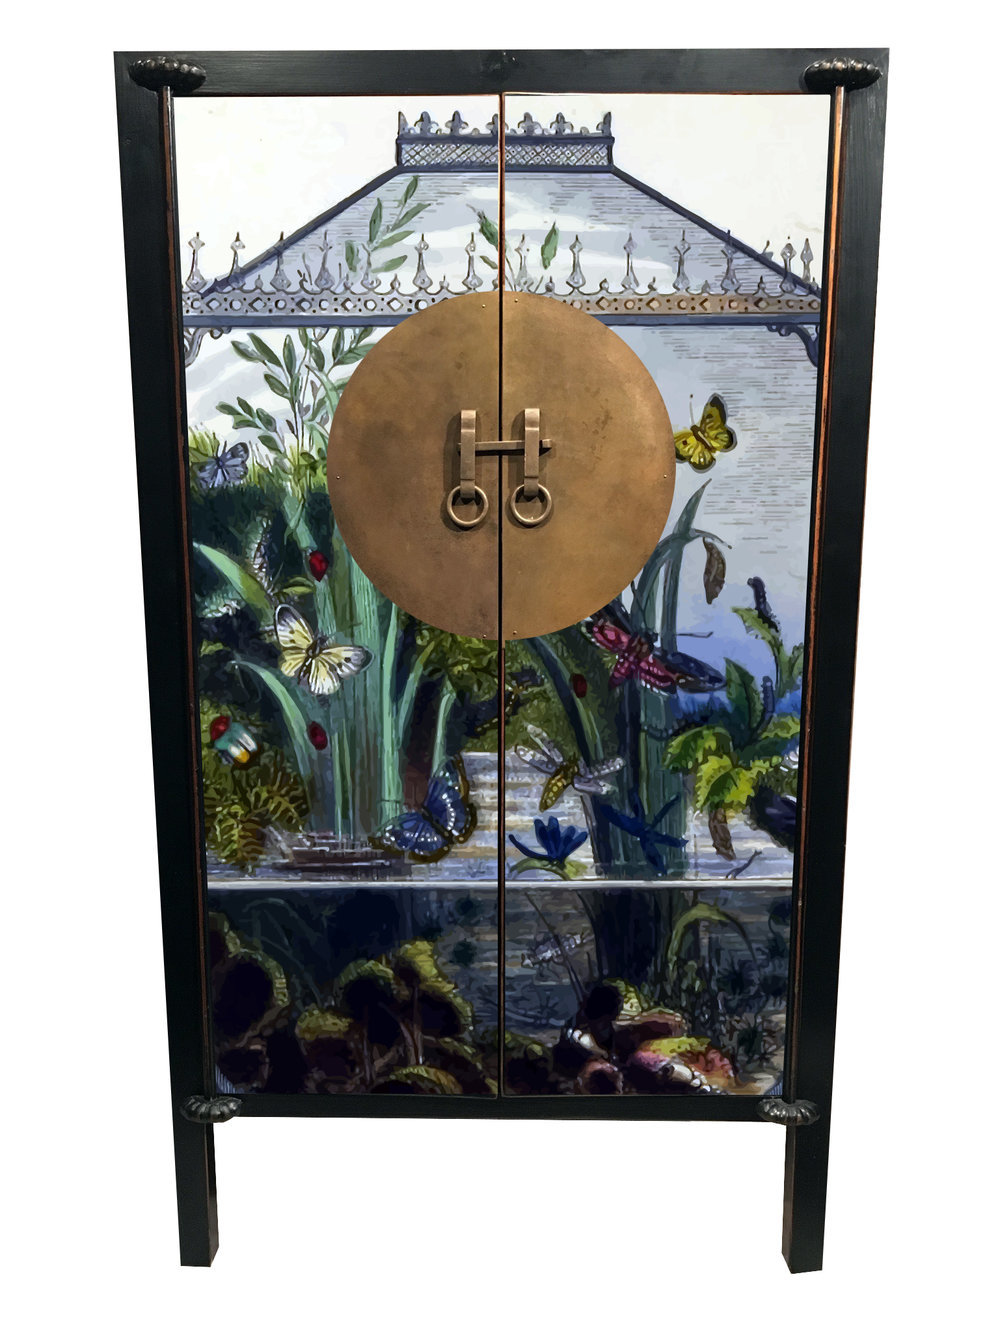 #3. BOTANICAL - The perfect entryway chifferobe that holds your sun hats, driving gloves, and wellies.A rare botanical old-world illustration celebrating butterflies, growing reeds and underwater life. It is a statement piece that won't go unnoticed. We see a Pitch Black interior and exterior with a Hague Blue accent wall on the inside.